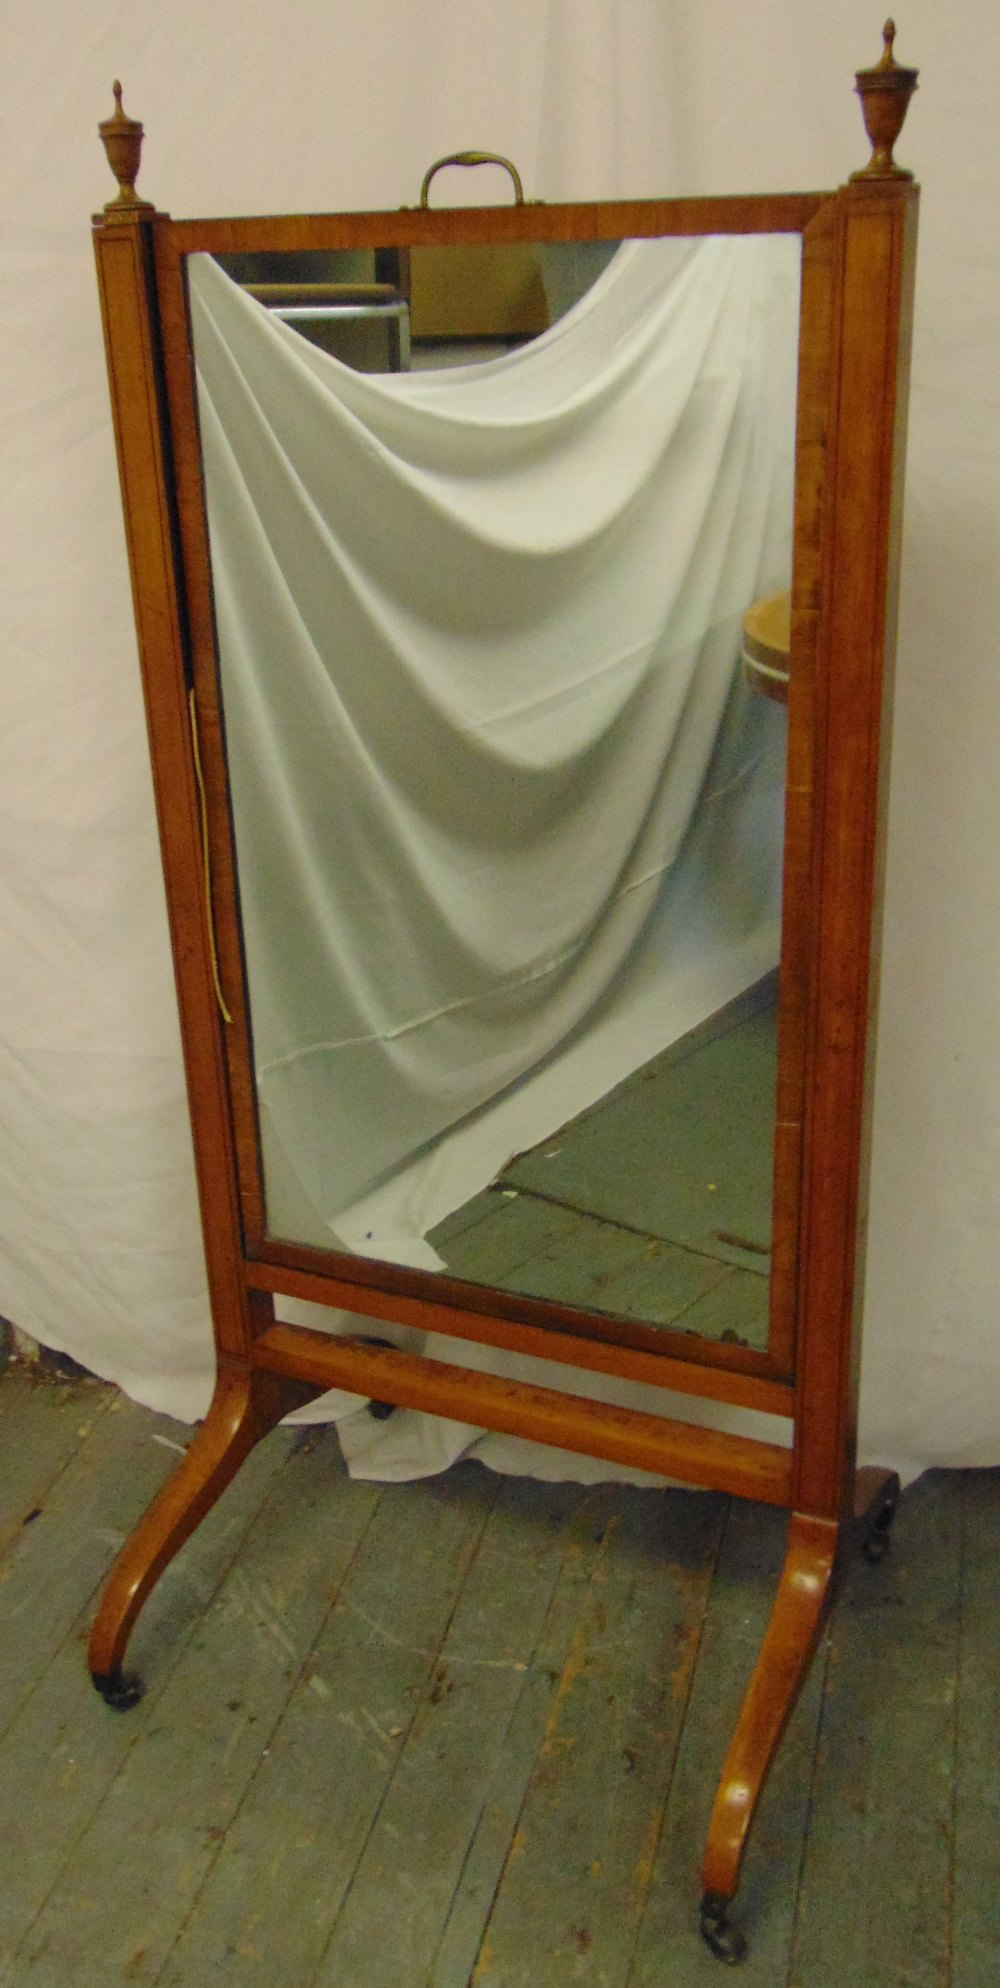 Lot 52 - A rectangular Cheval mirror, the supports surmounted with urn finials, on scroll legs with brass